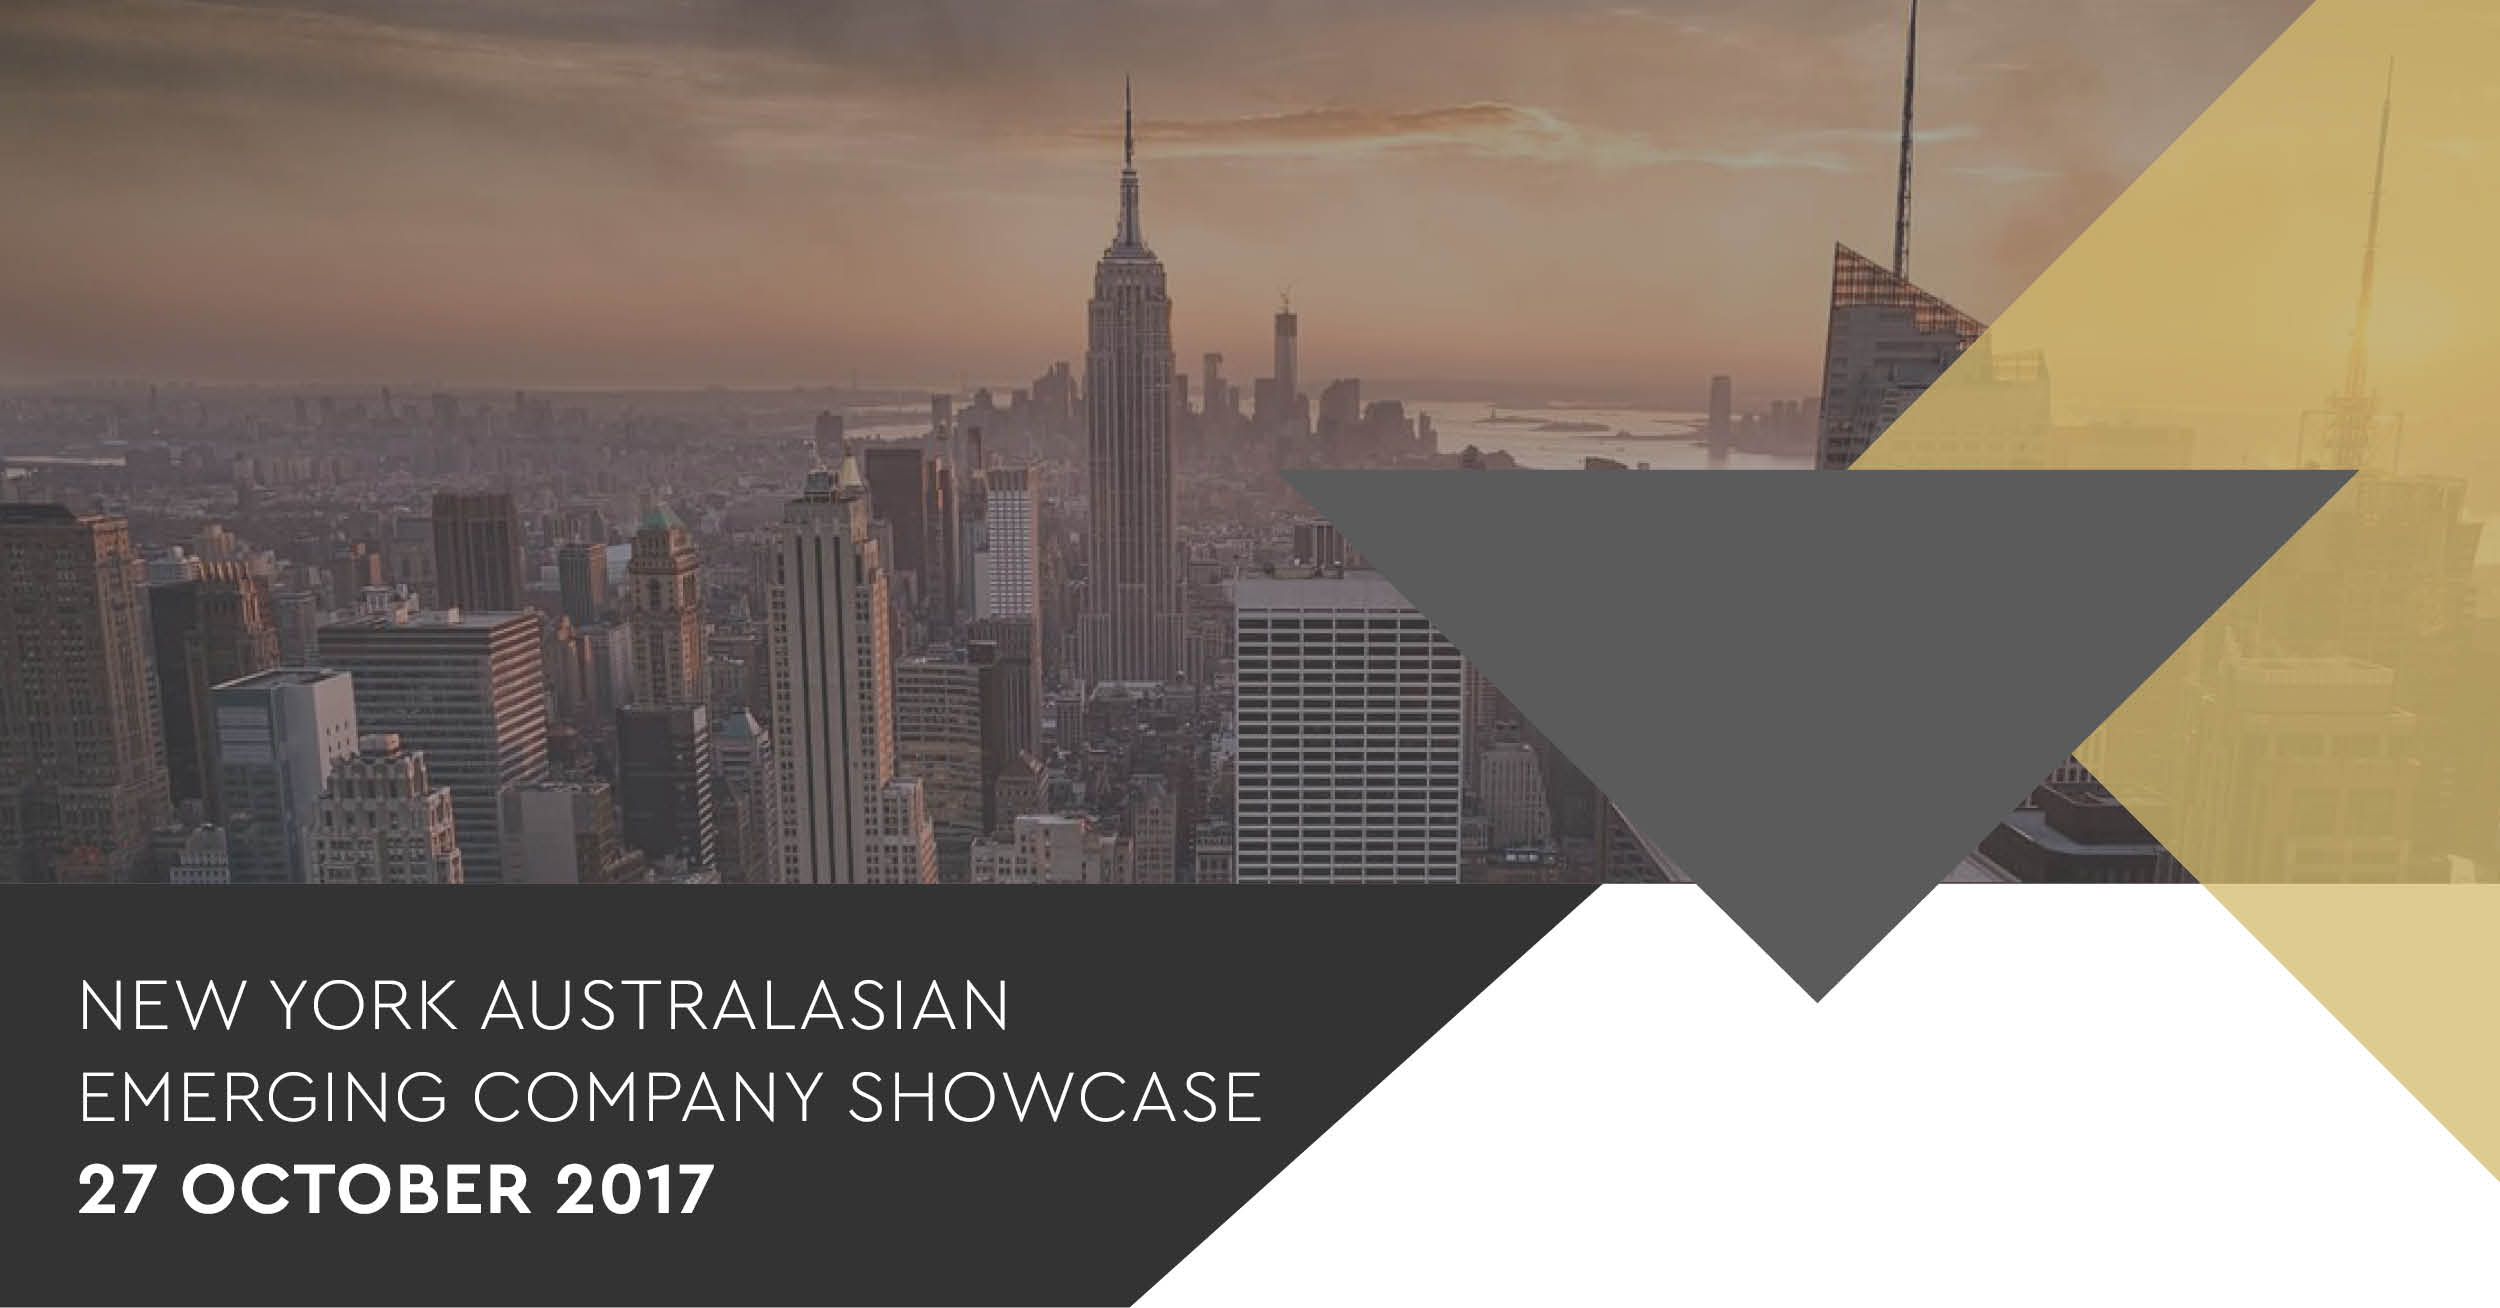 sofa expo new york 2017 steam clean toronto australasian emerging company showcase october